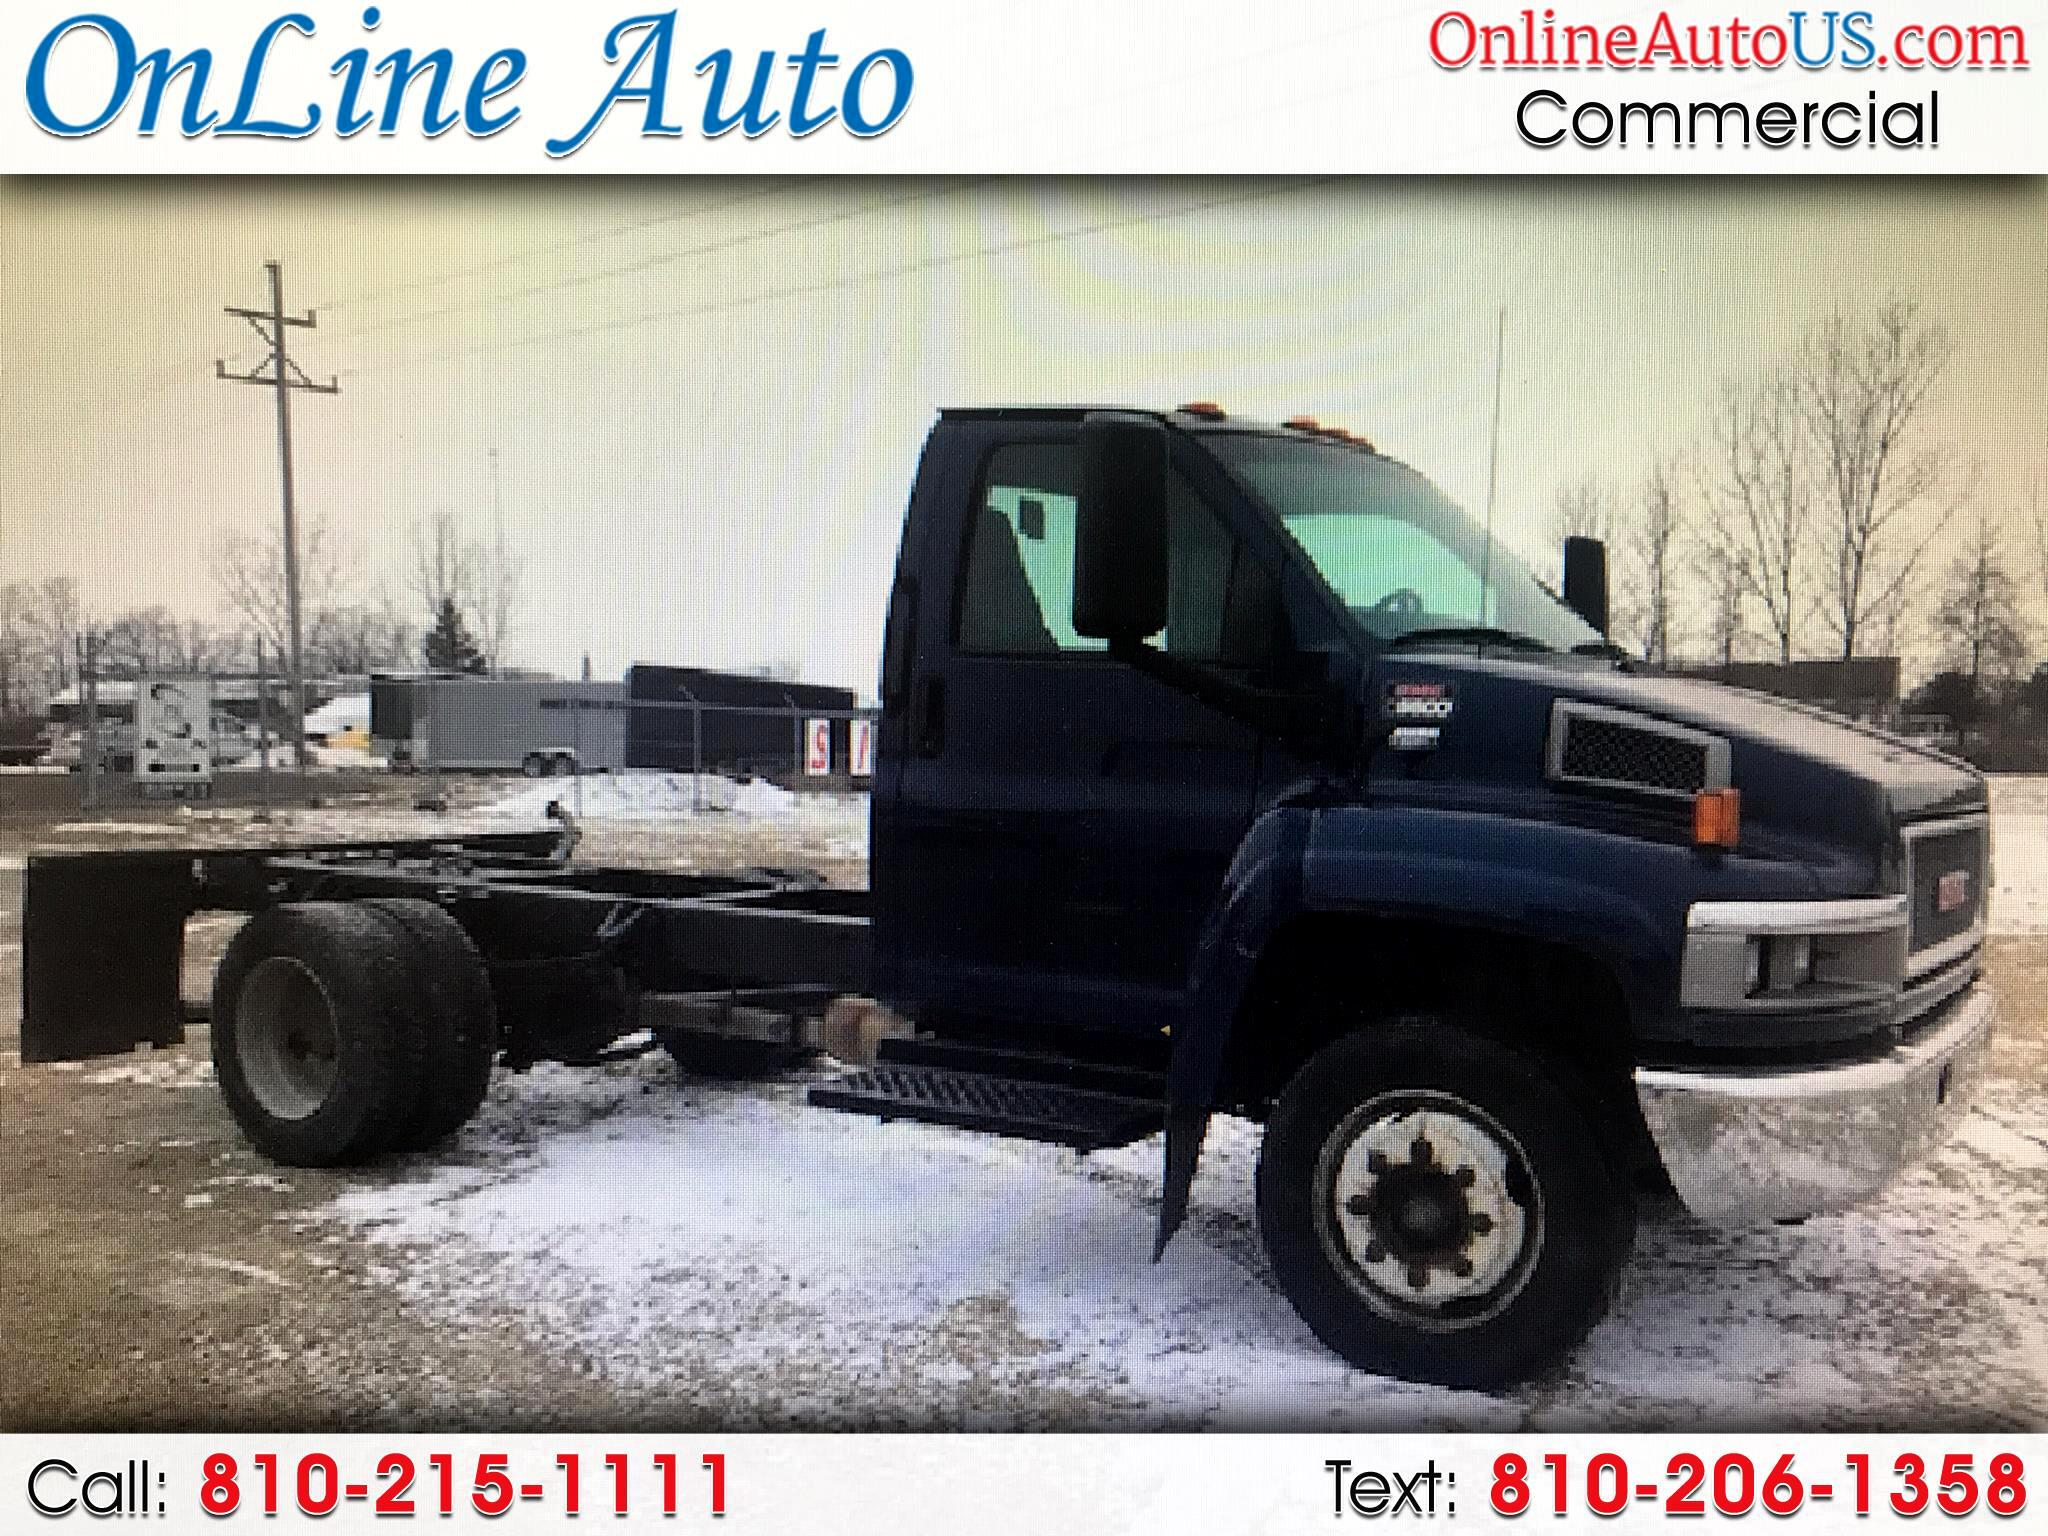 2005 GMC TC5500 CAB AND CHASSIS DIESEL